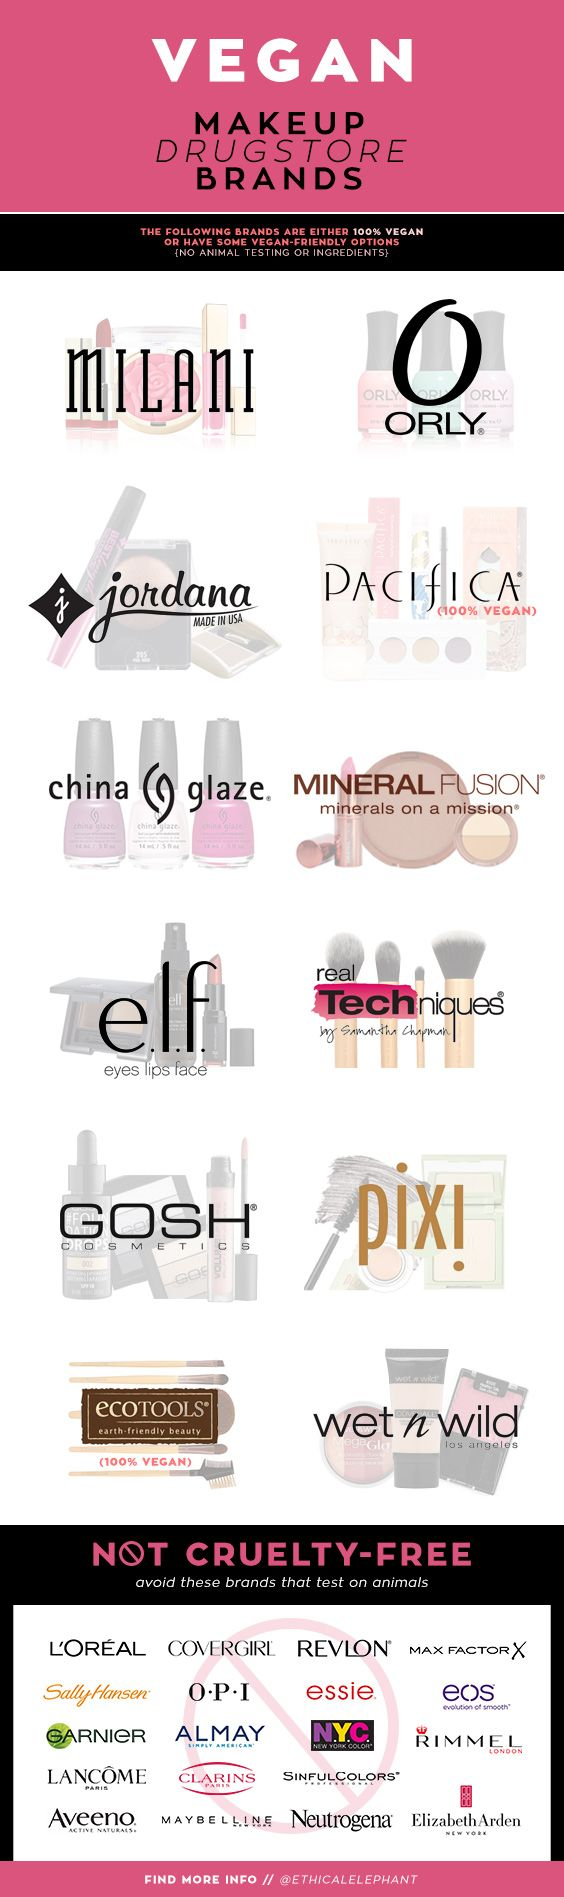 Full list of Vegan makeup drugstore brands and which brands to avoid that test o...